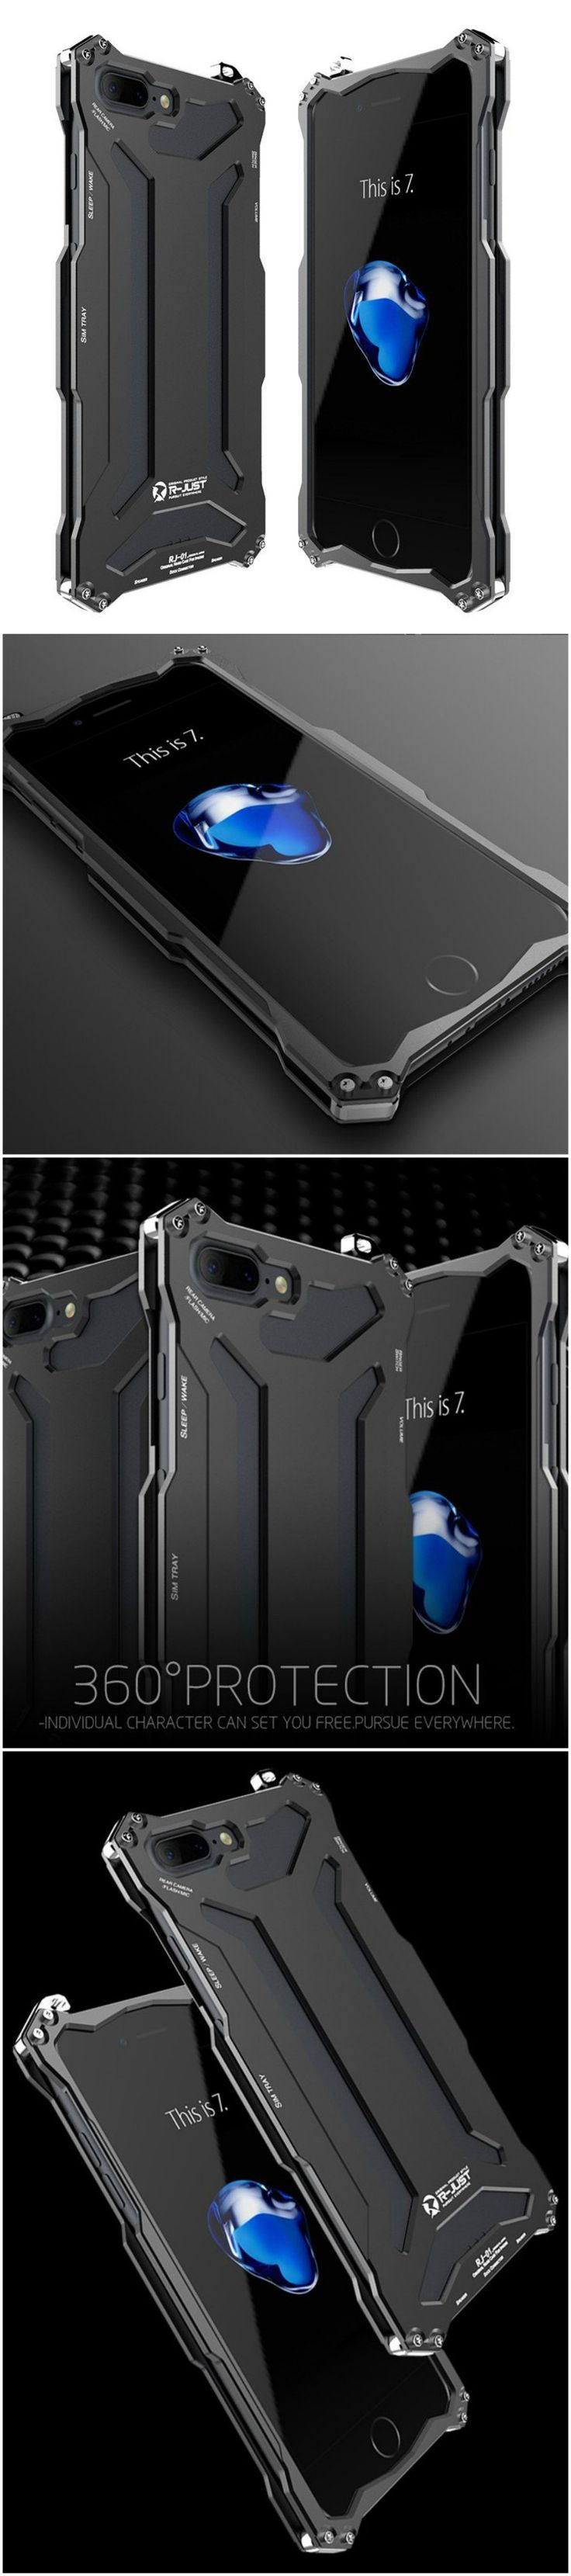 Newest iPhone 7 Plus fashion slim case with style for the savvy users. Fits well into workout and gym clothes. Great gift home accessory products for Apple iPhone 7 Plus owners, gizmos lovers, current smartphone and cellphone owners, shoppers who o are active in health and fitness and travel  #tech